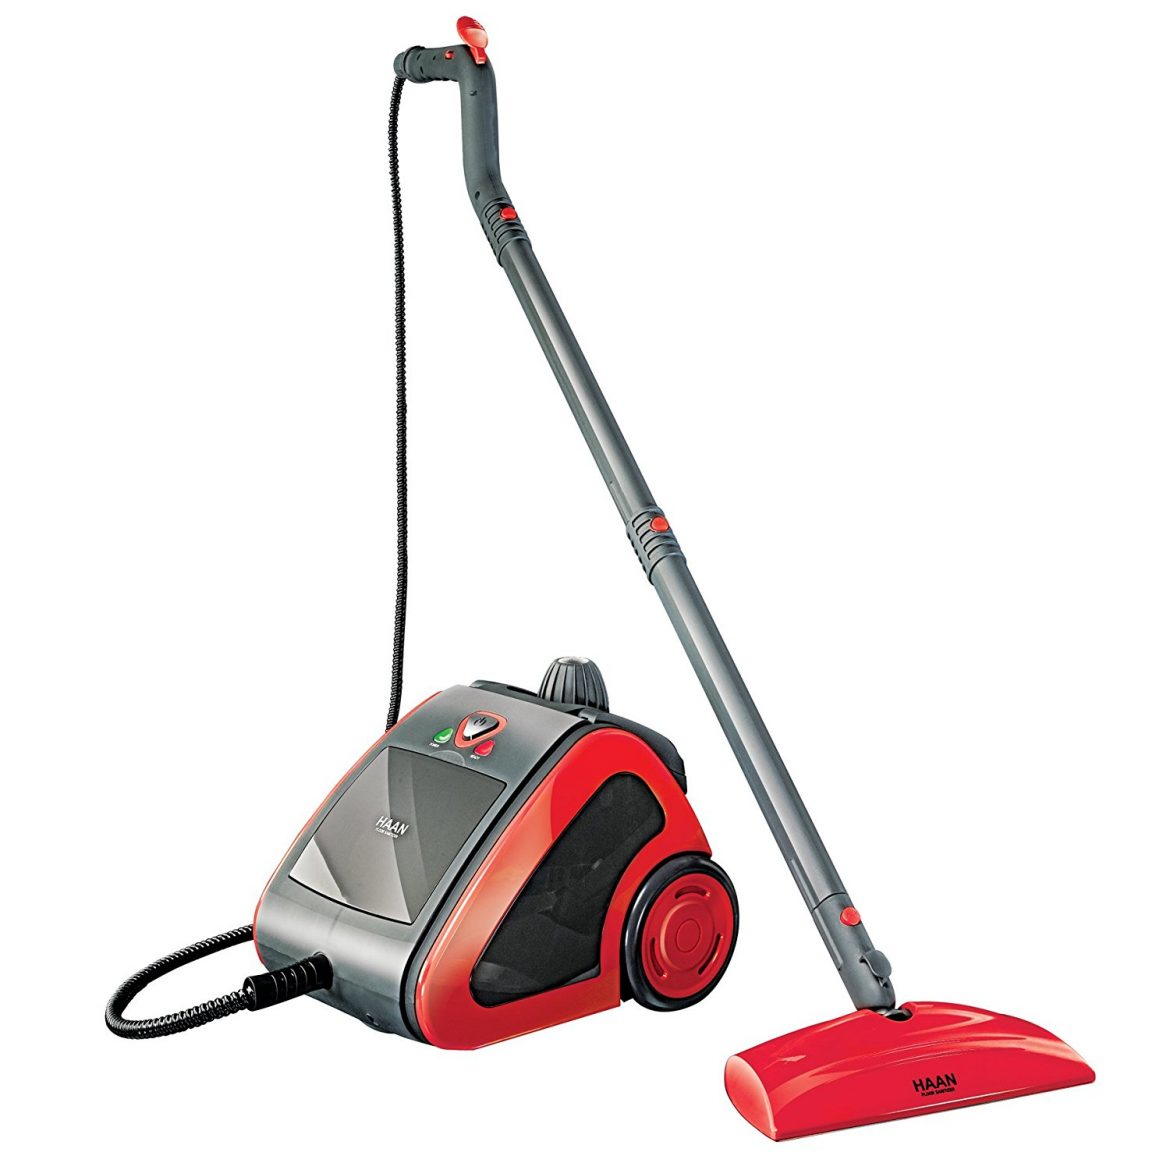 Haan MS-35R Multi-Purpose Steam Cleaner Review